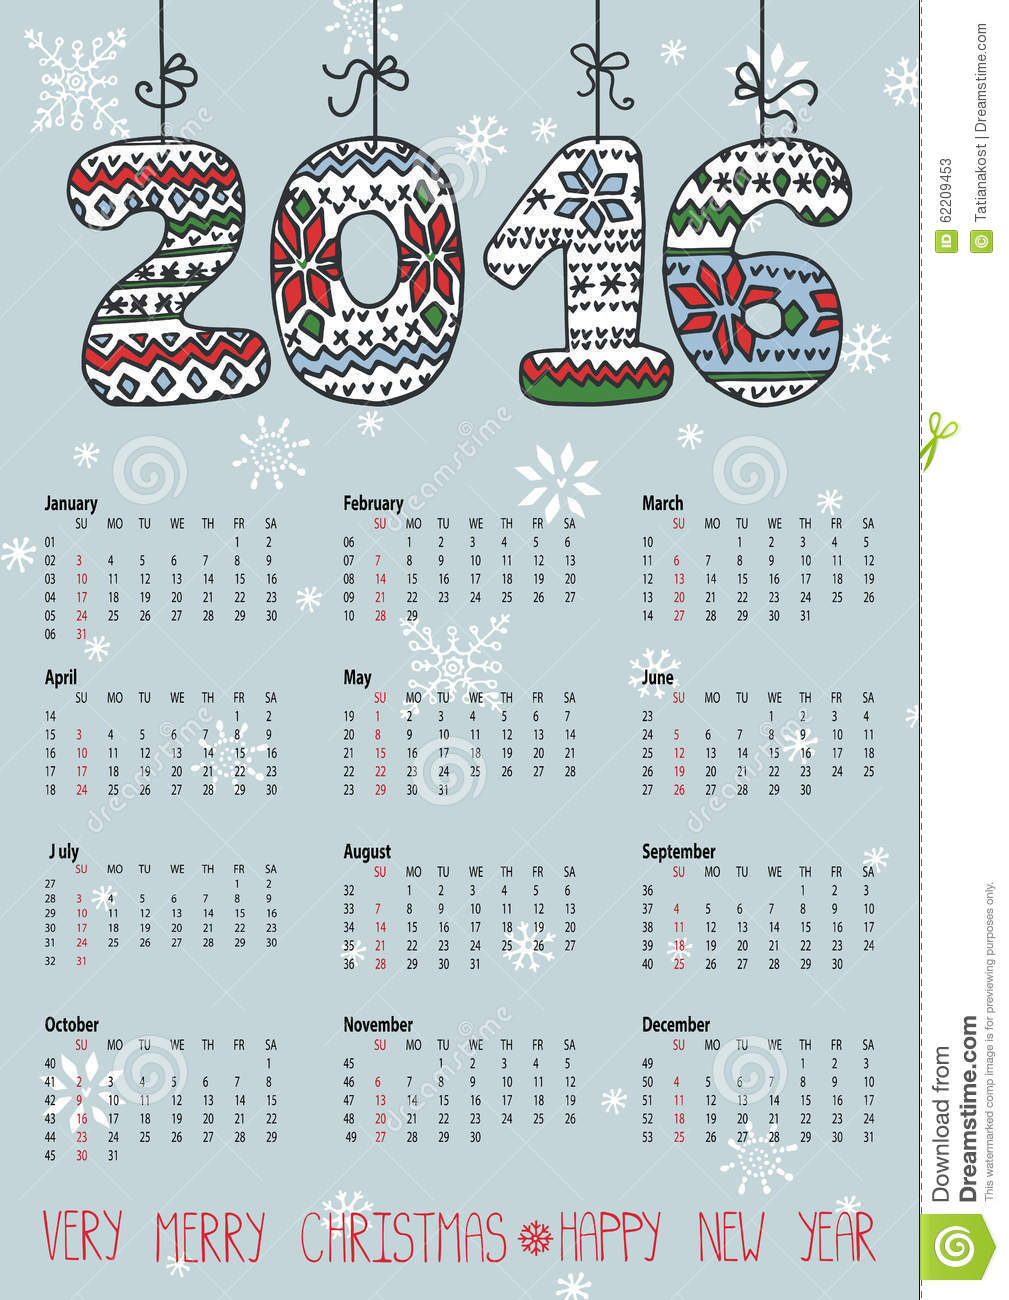 Knitting Pattern Numbers : Calendar 2016.Knitting Hanging Numbers Stock Vector - Image: 62209453